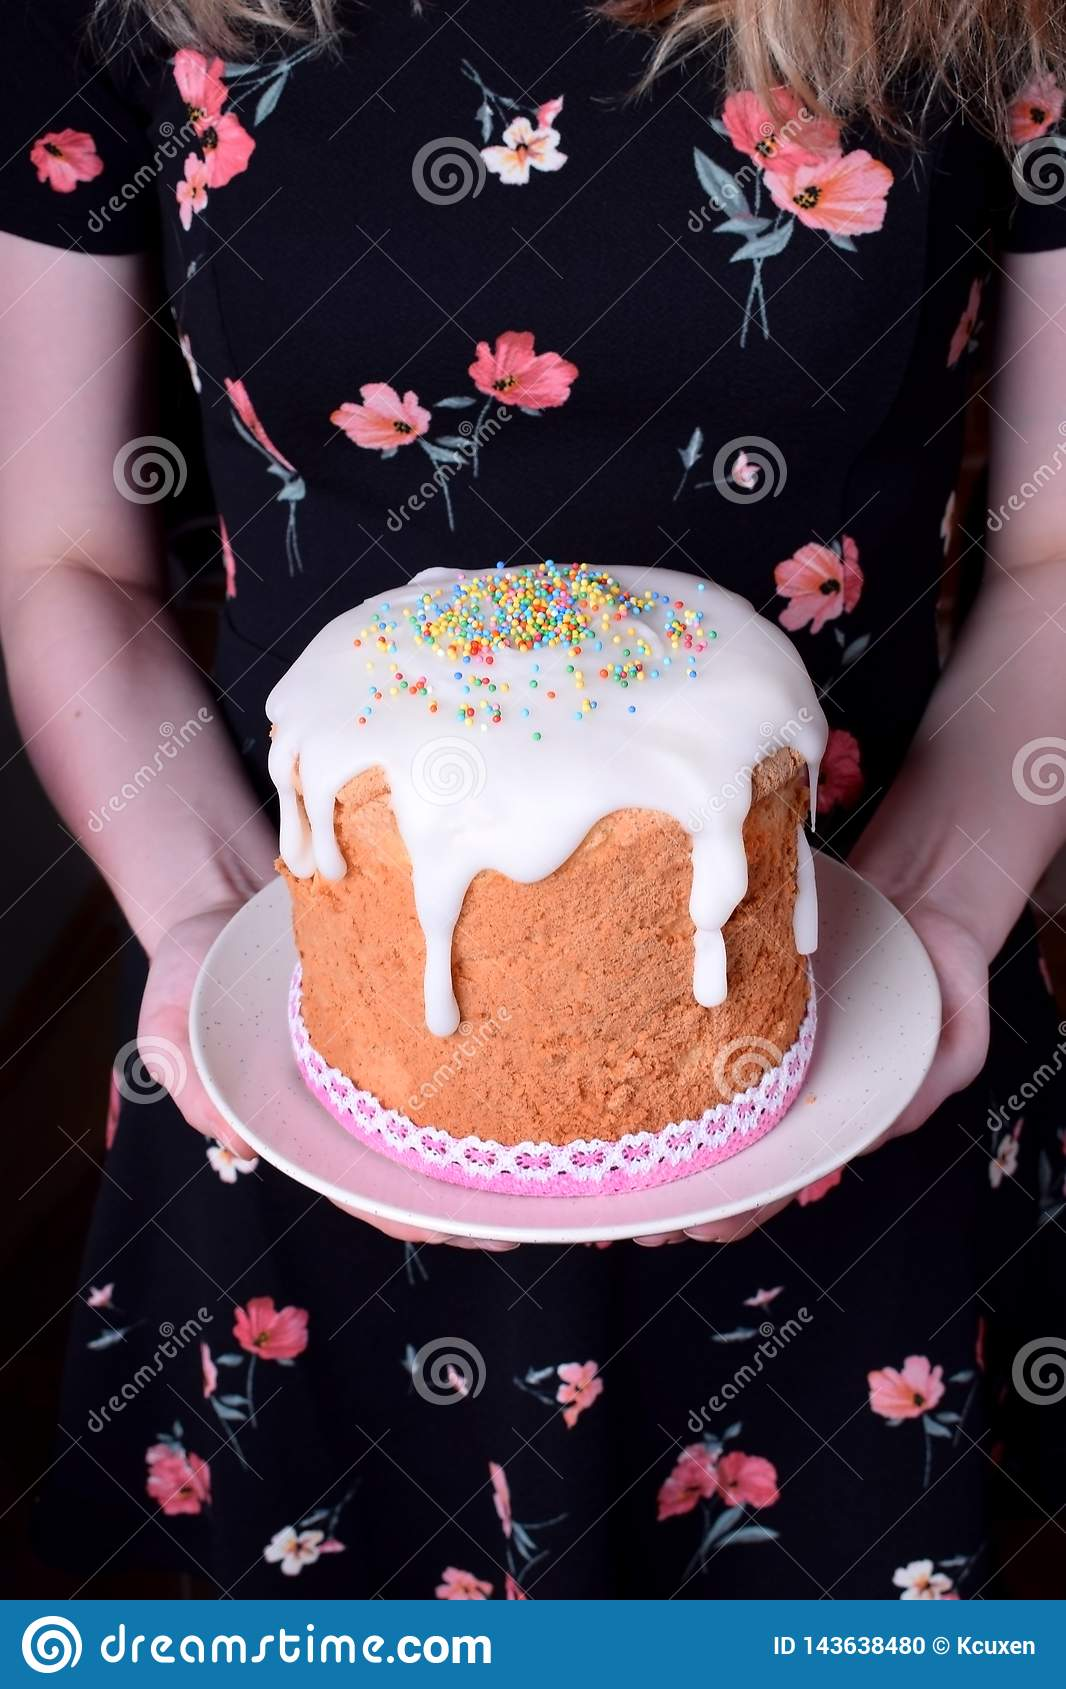 Easter cake with sugar glazing and multicolored confectionery sprinkles